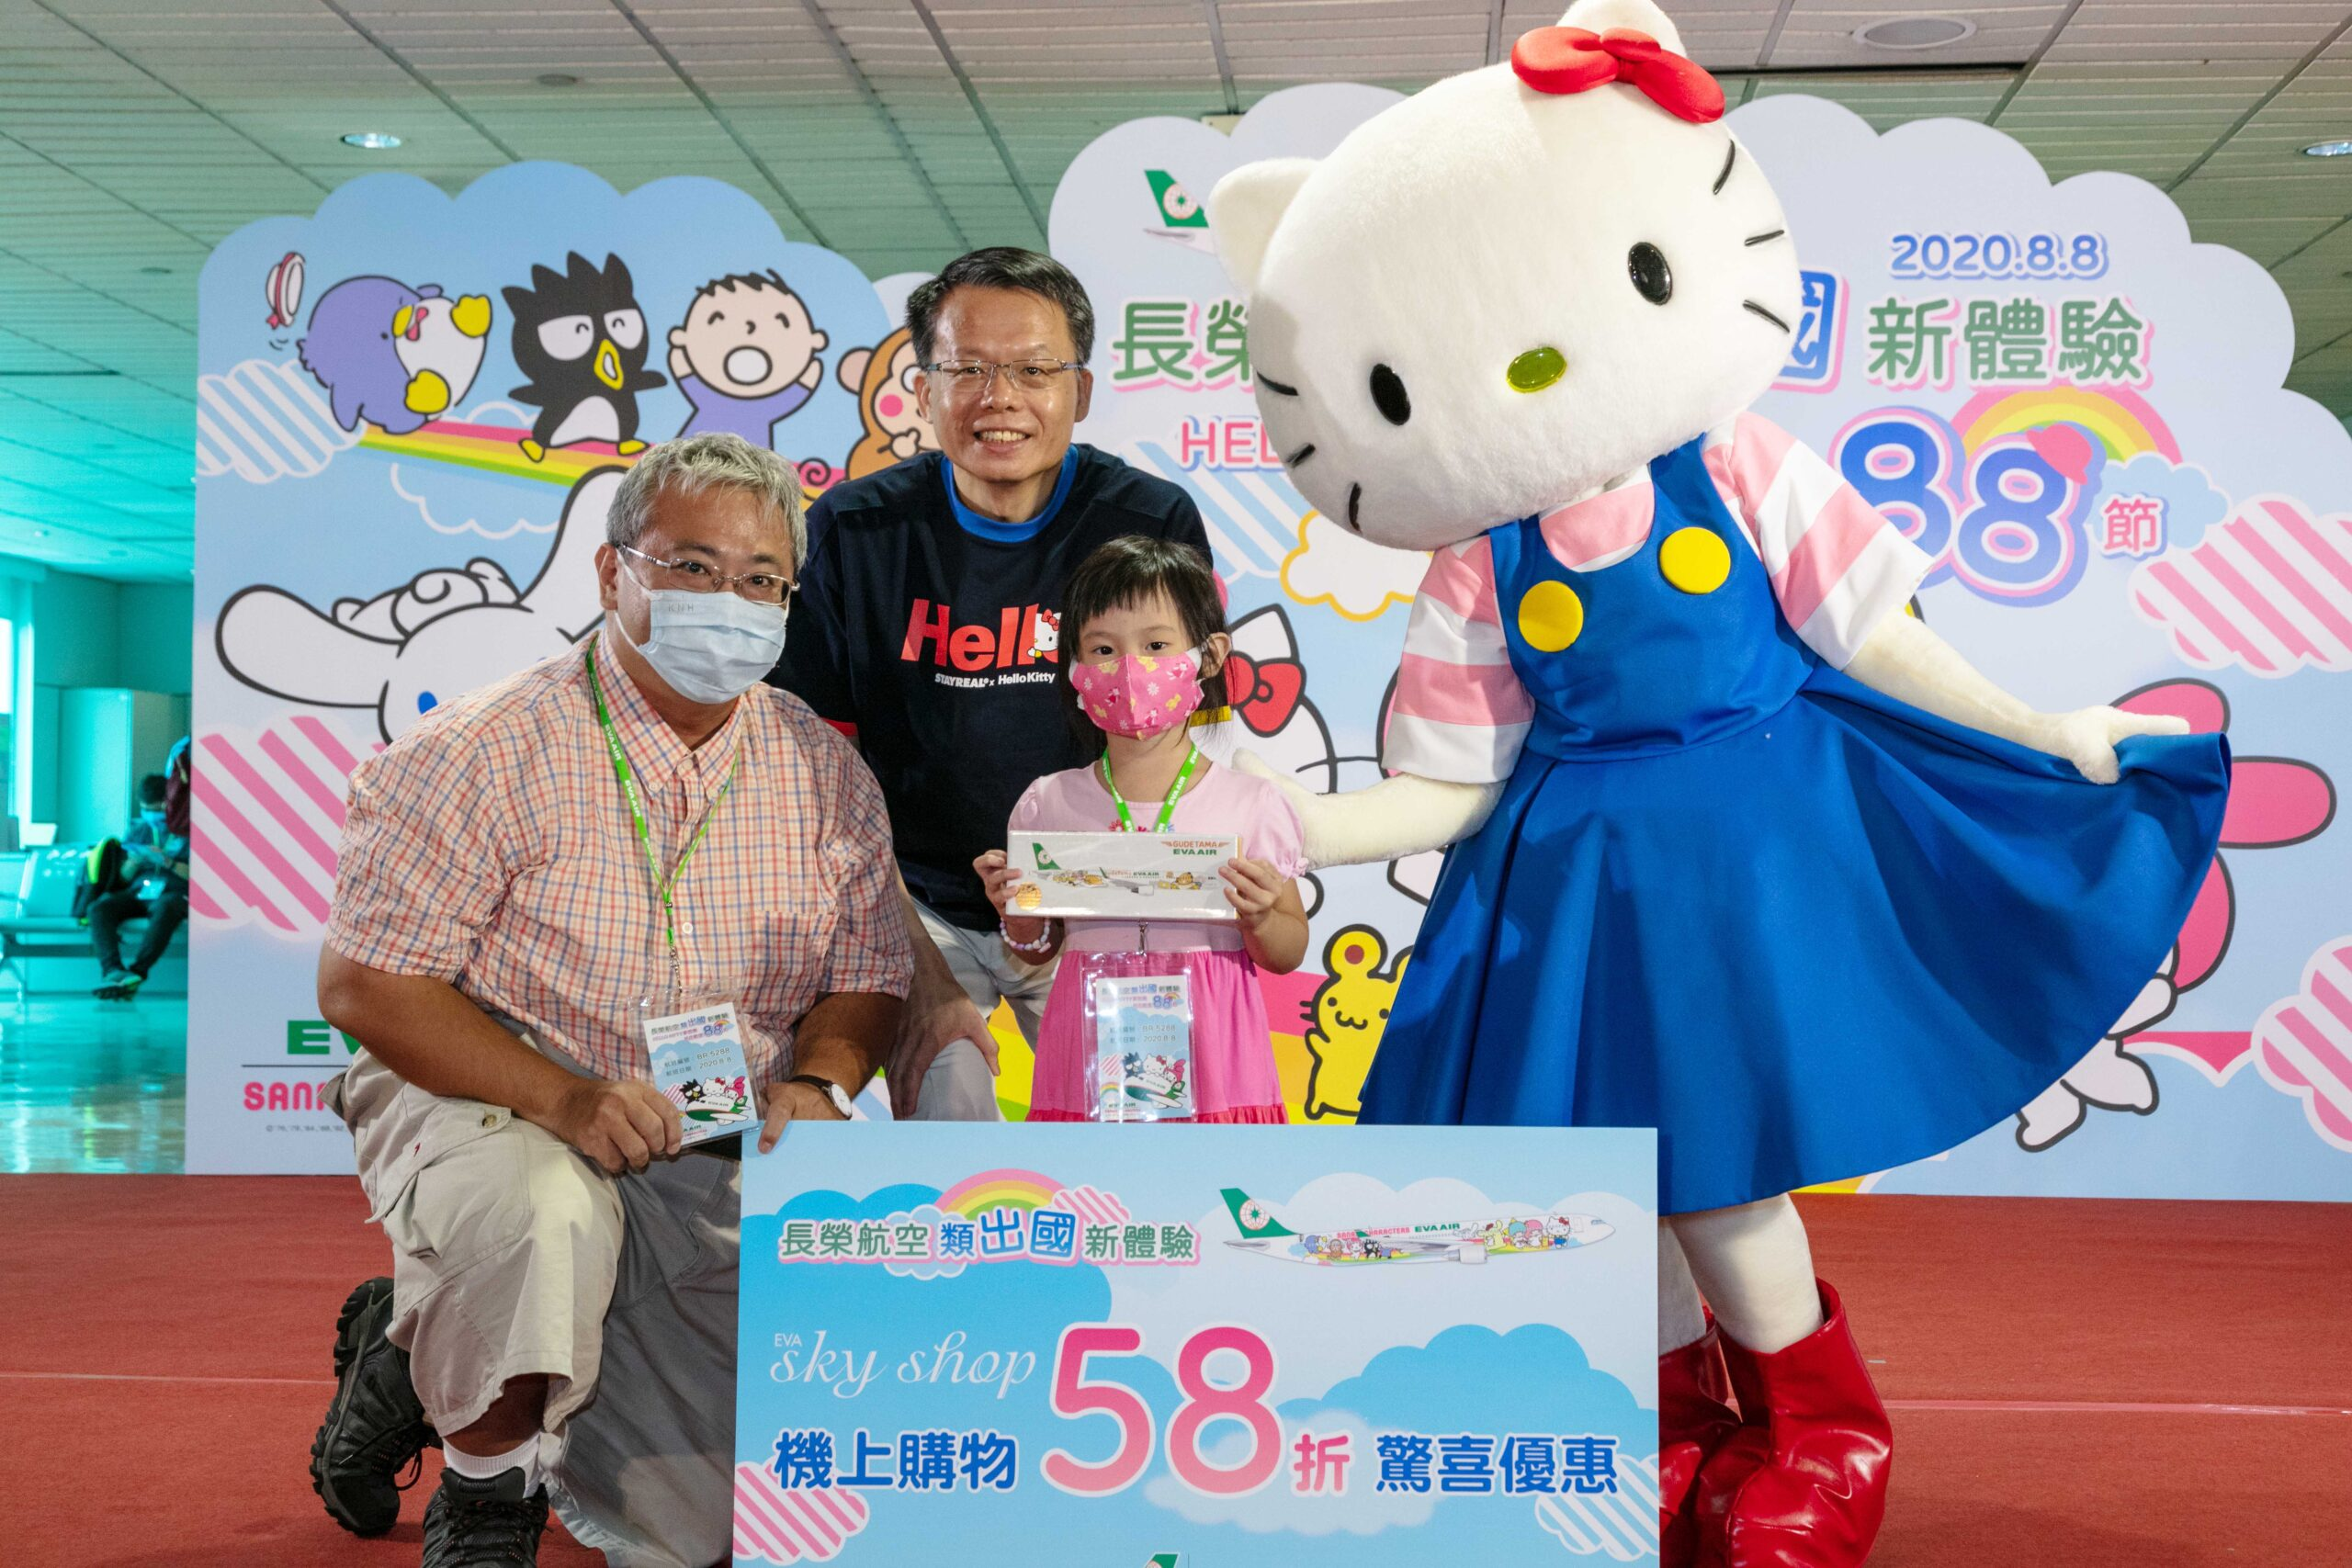 Eva Air Fathers Day flight with Hello Kitty